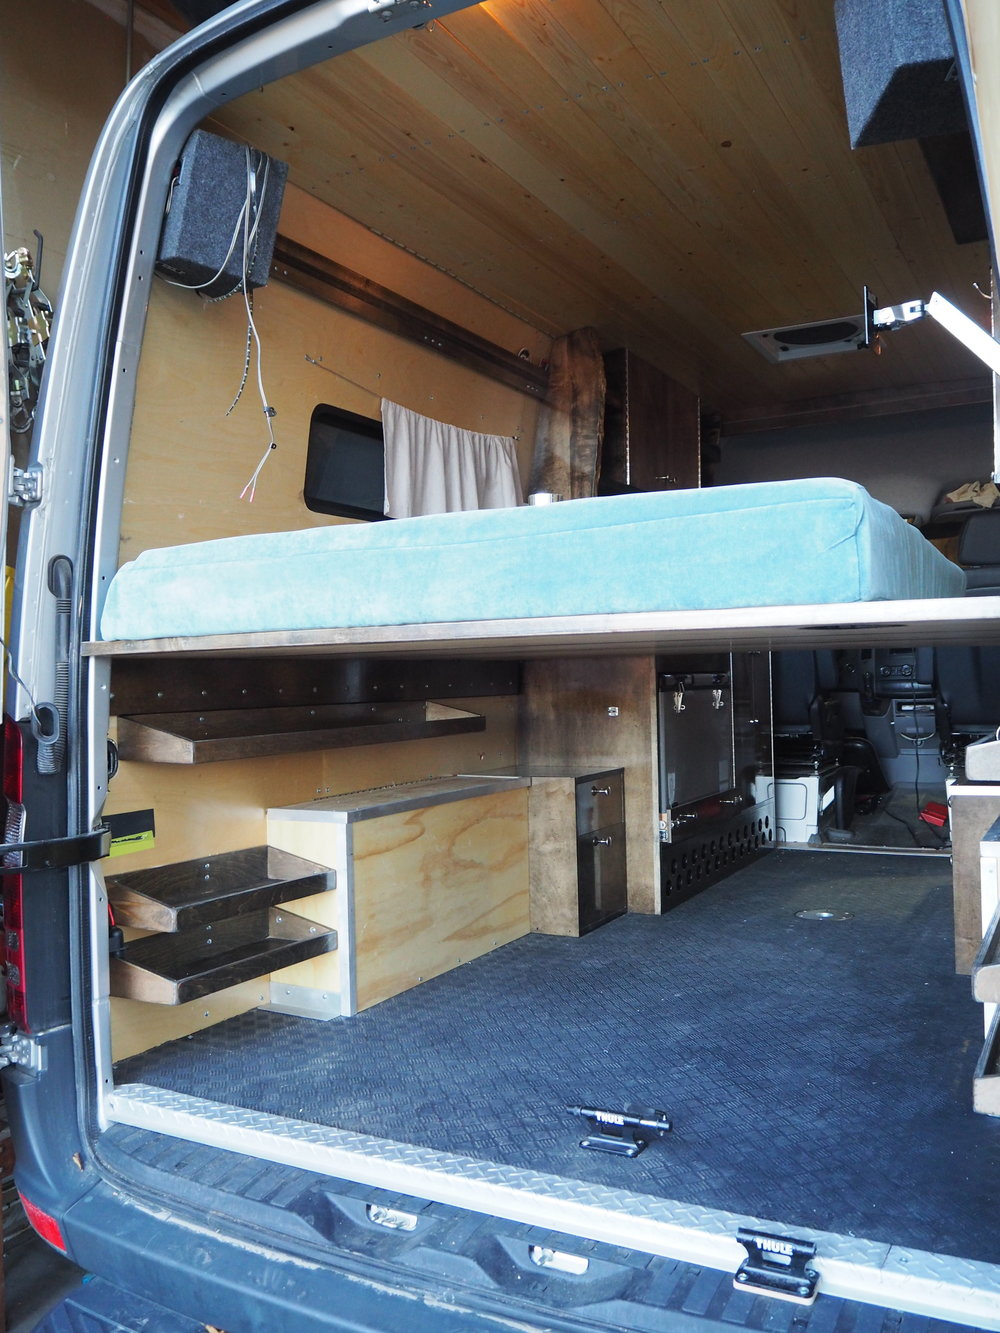 Bed Platform From the Back of the Sprinter Van